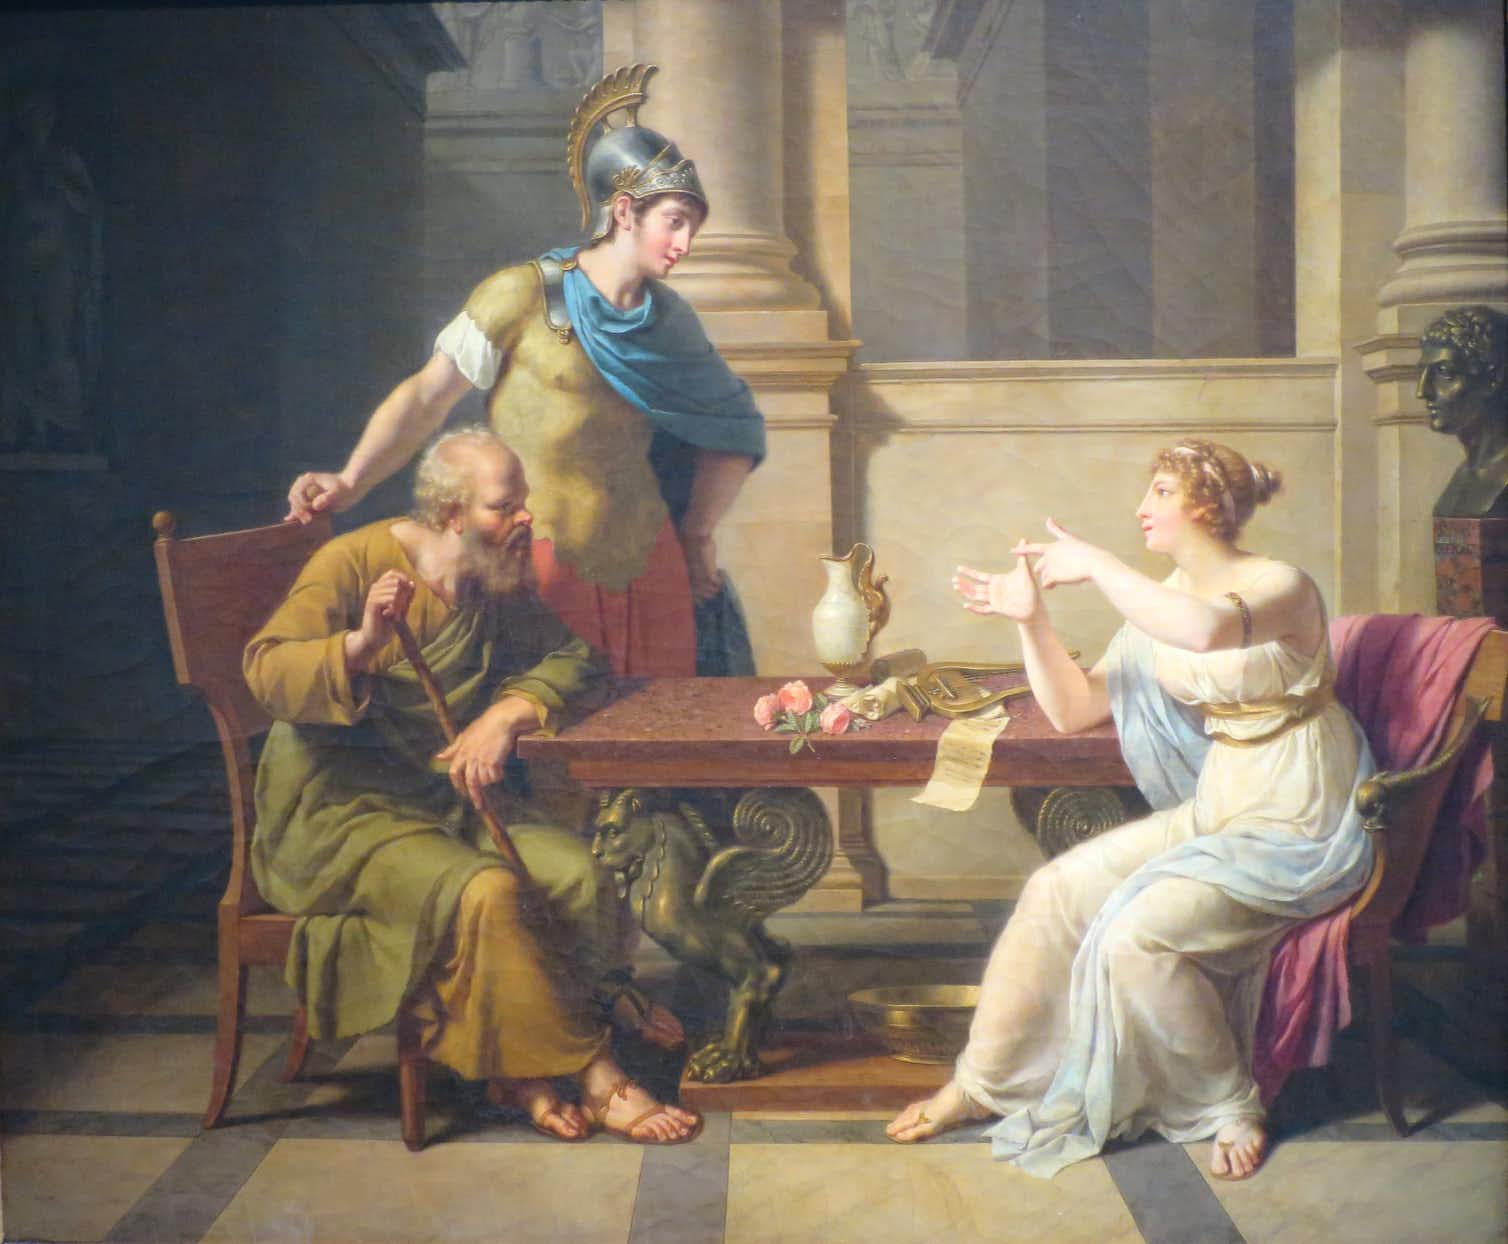 The Debate of Socrates and Aspasia, c. 1800. Credit: Wikimedia Commons